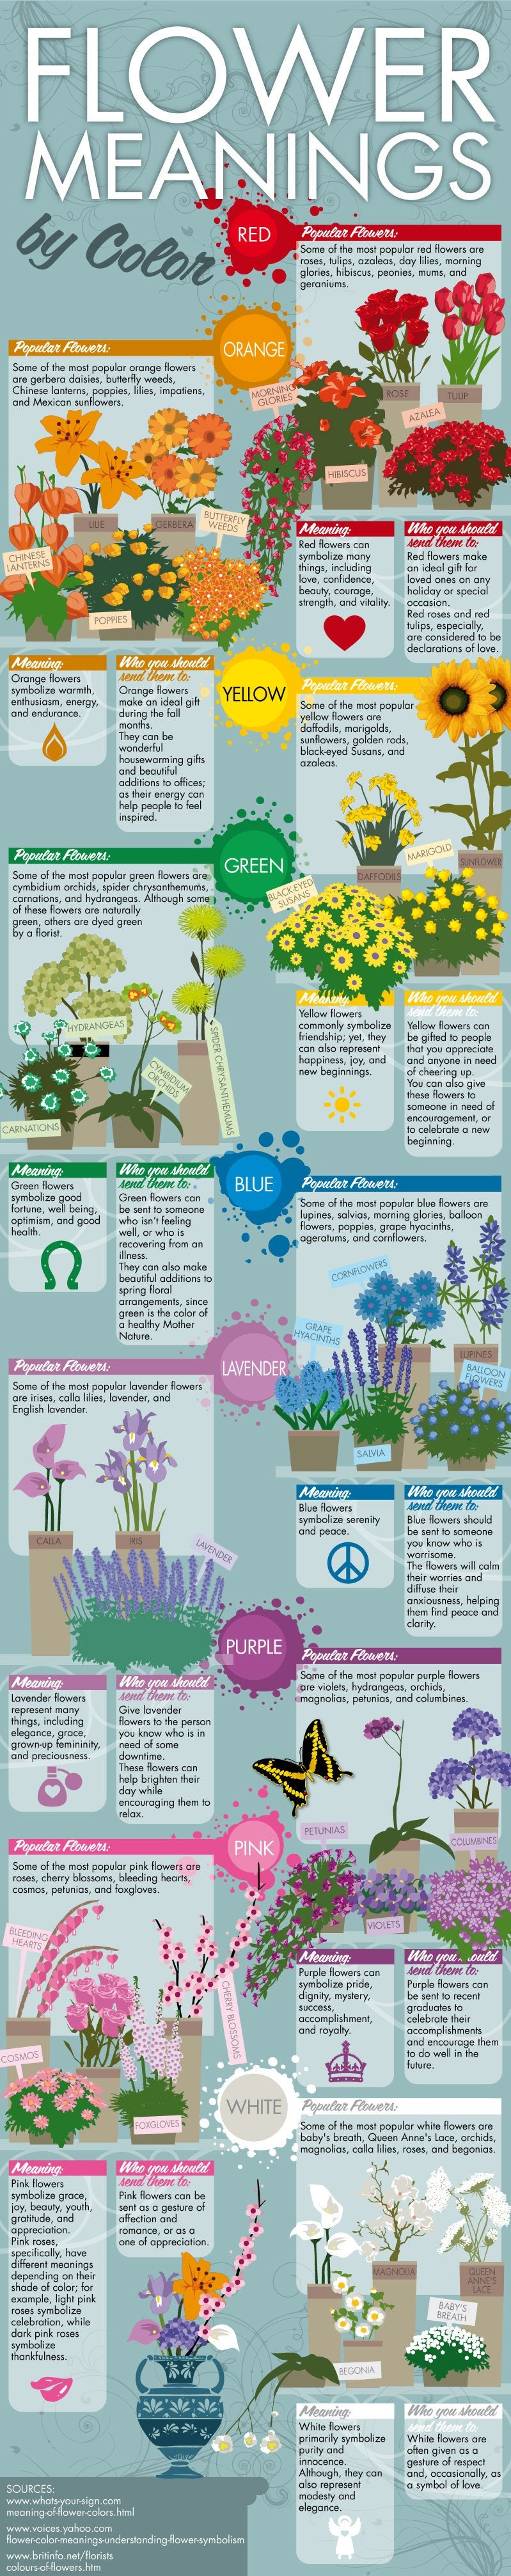 Flower Meaning by Color